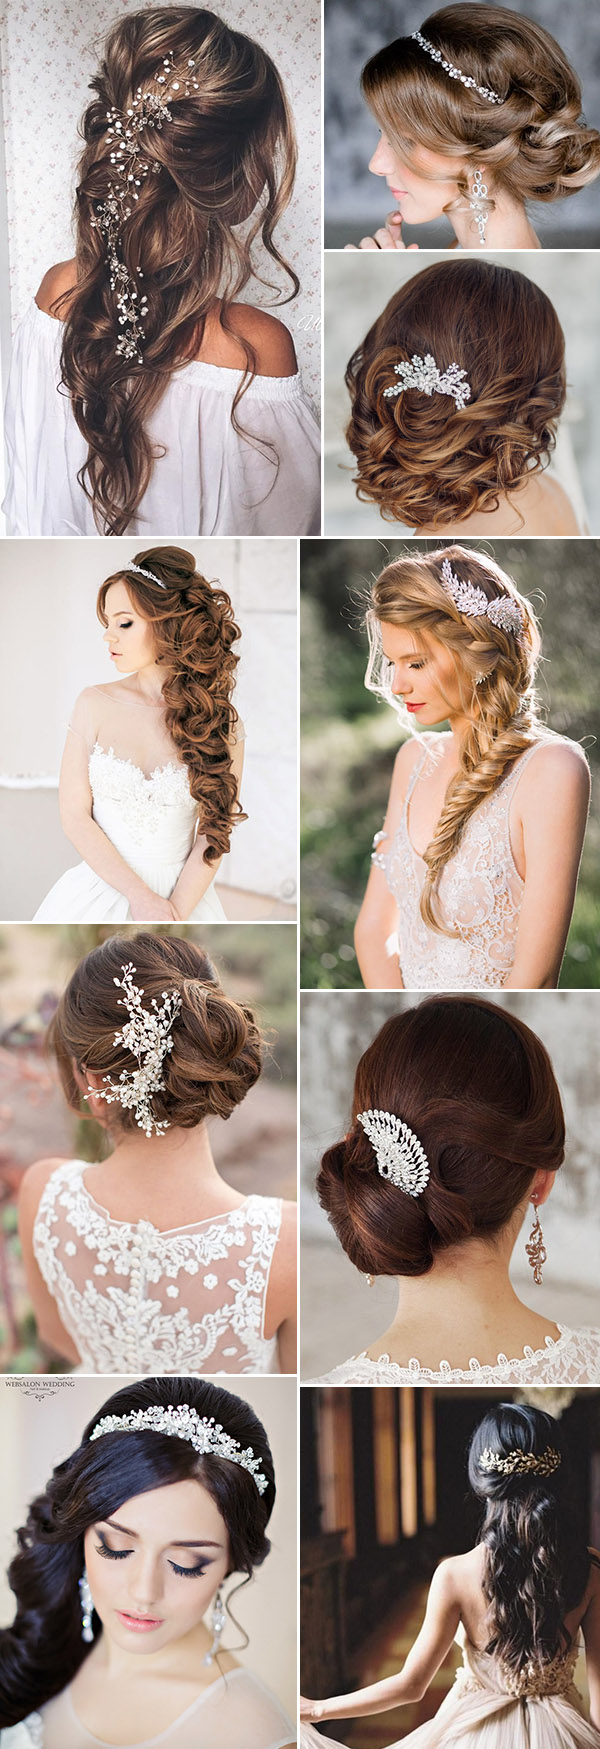 Floral Fancy Bridal Headpieces Hair Accessories 2019 Designs